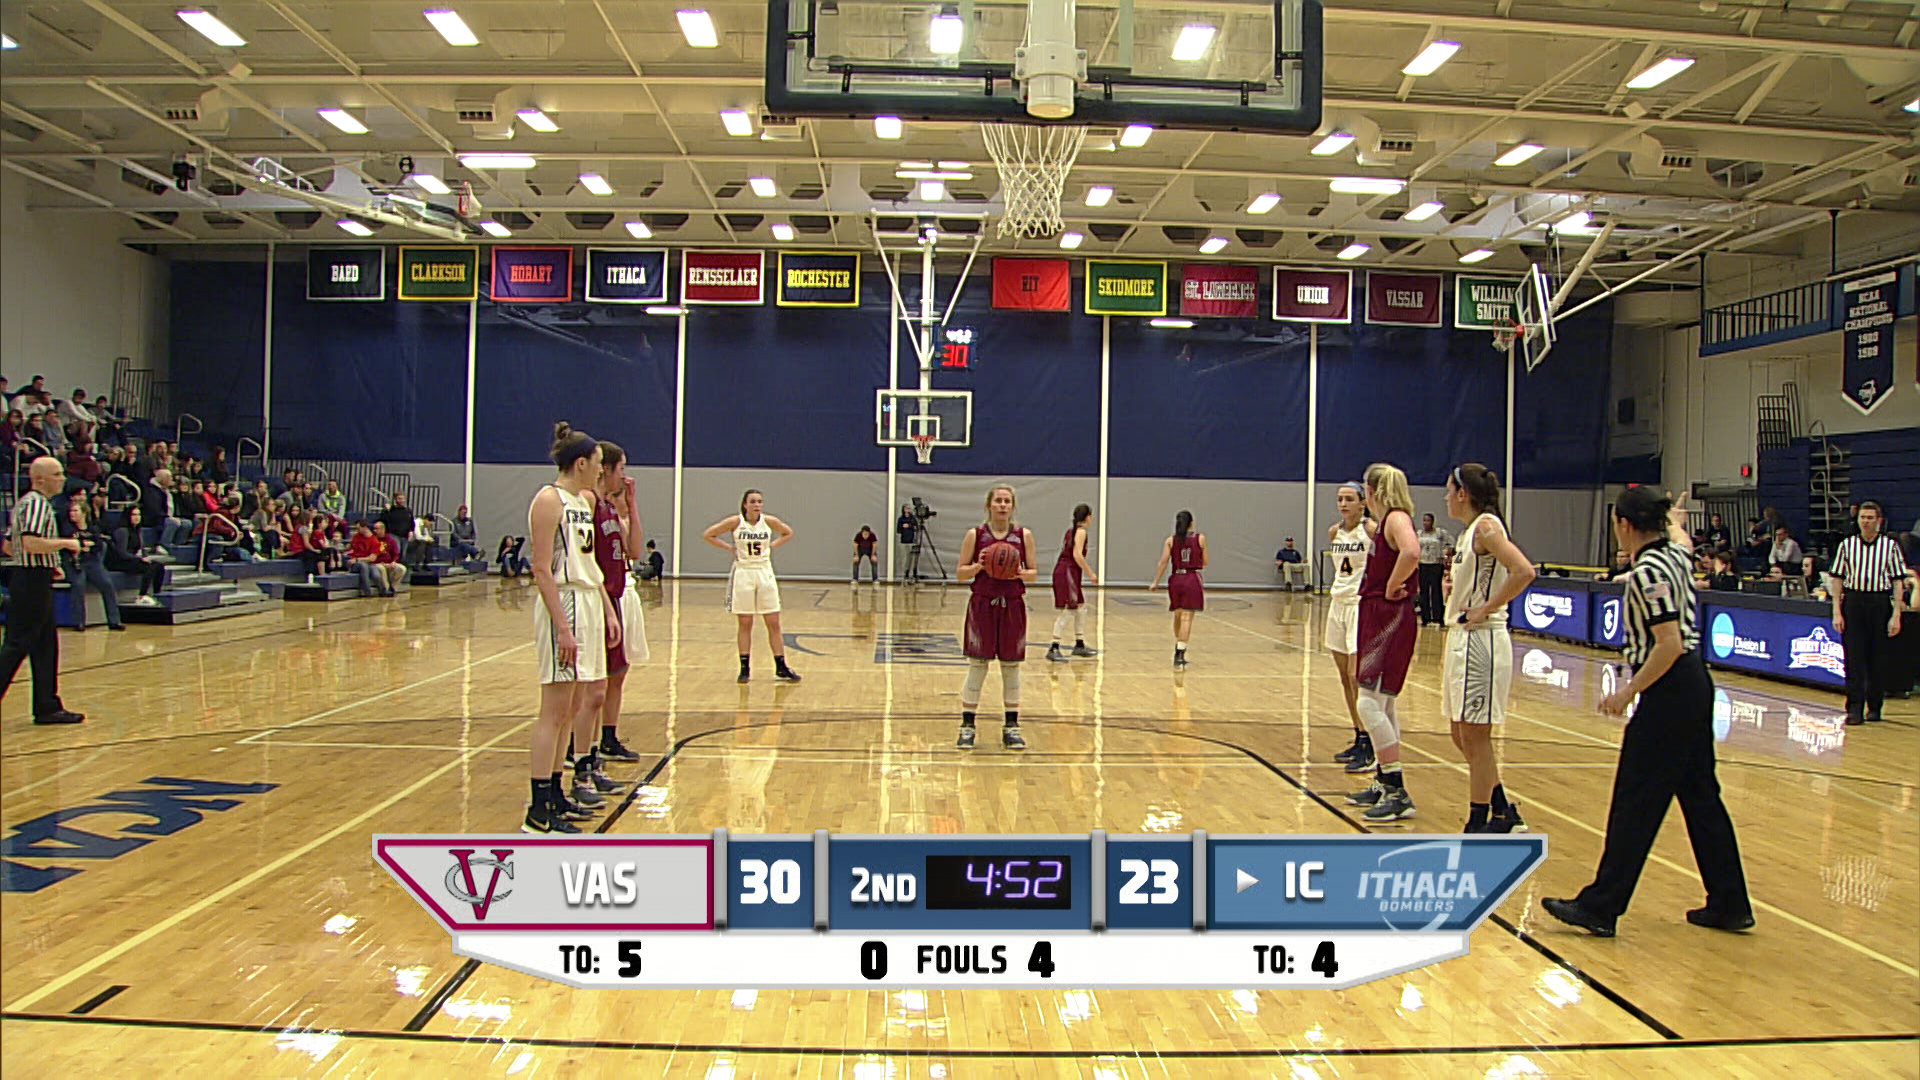 Ithaca womens basketball vs vassar first half bombers live ictv publicscrutiny Choice Image